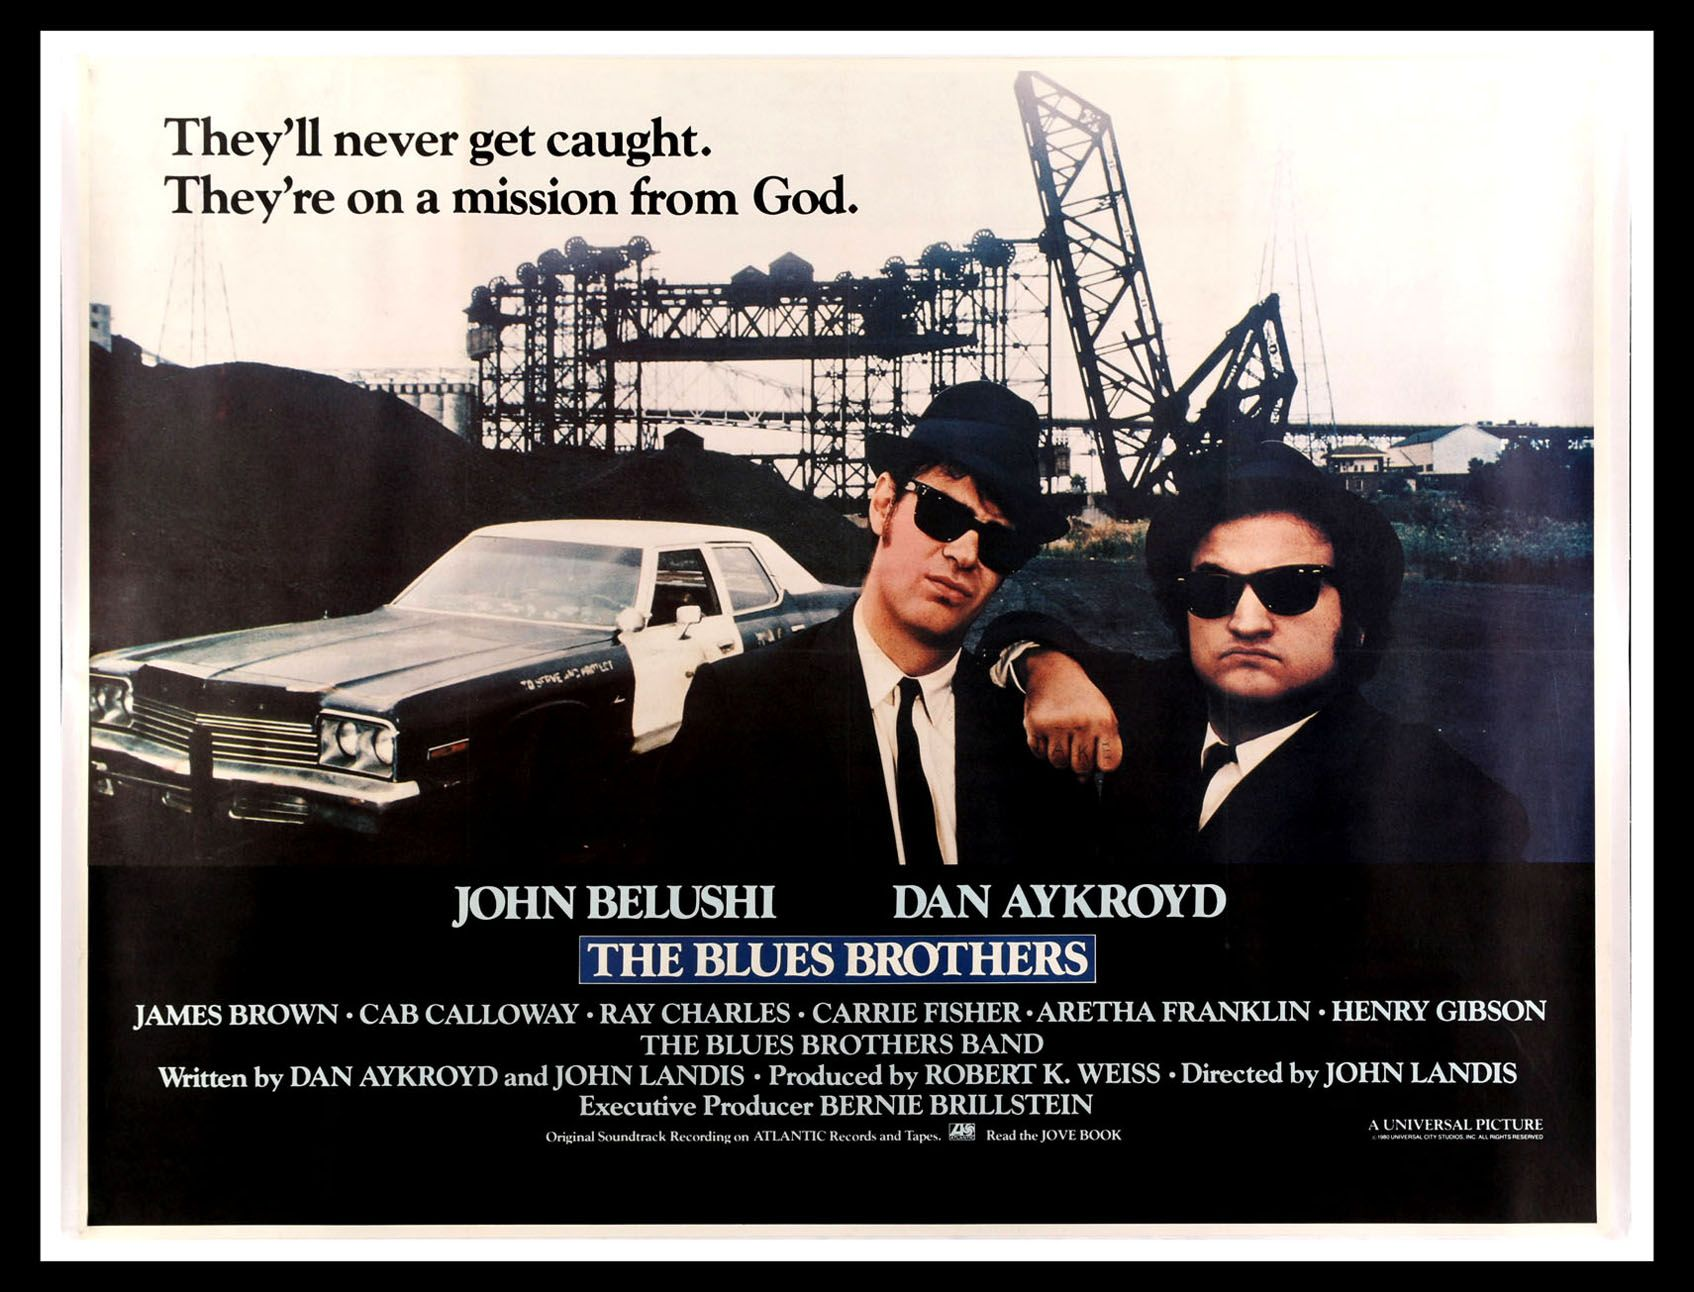 THE BLUES BROTHERS (1980) Starring Joliet Jake and Elwood Blues ...